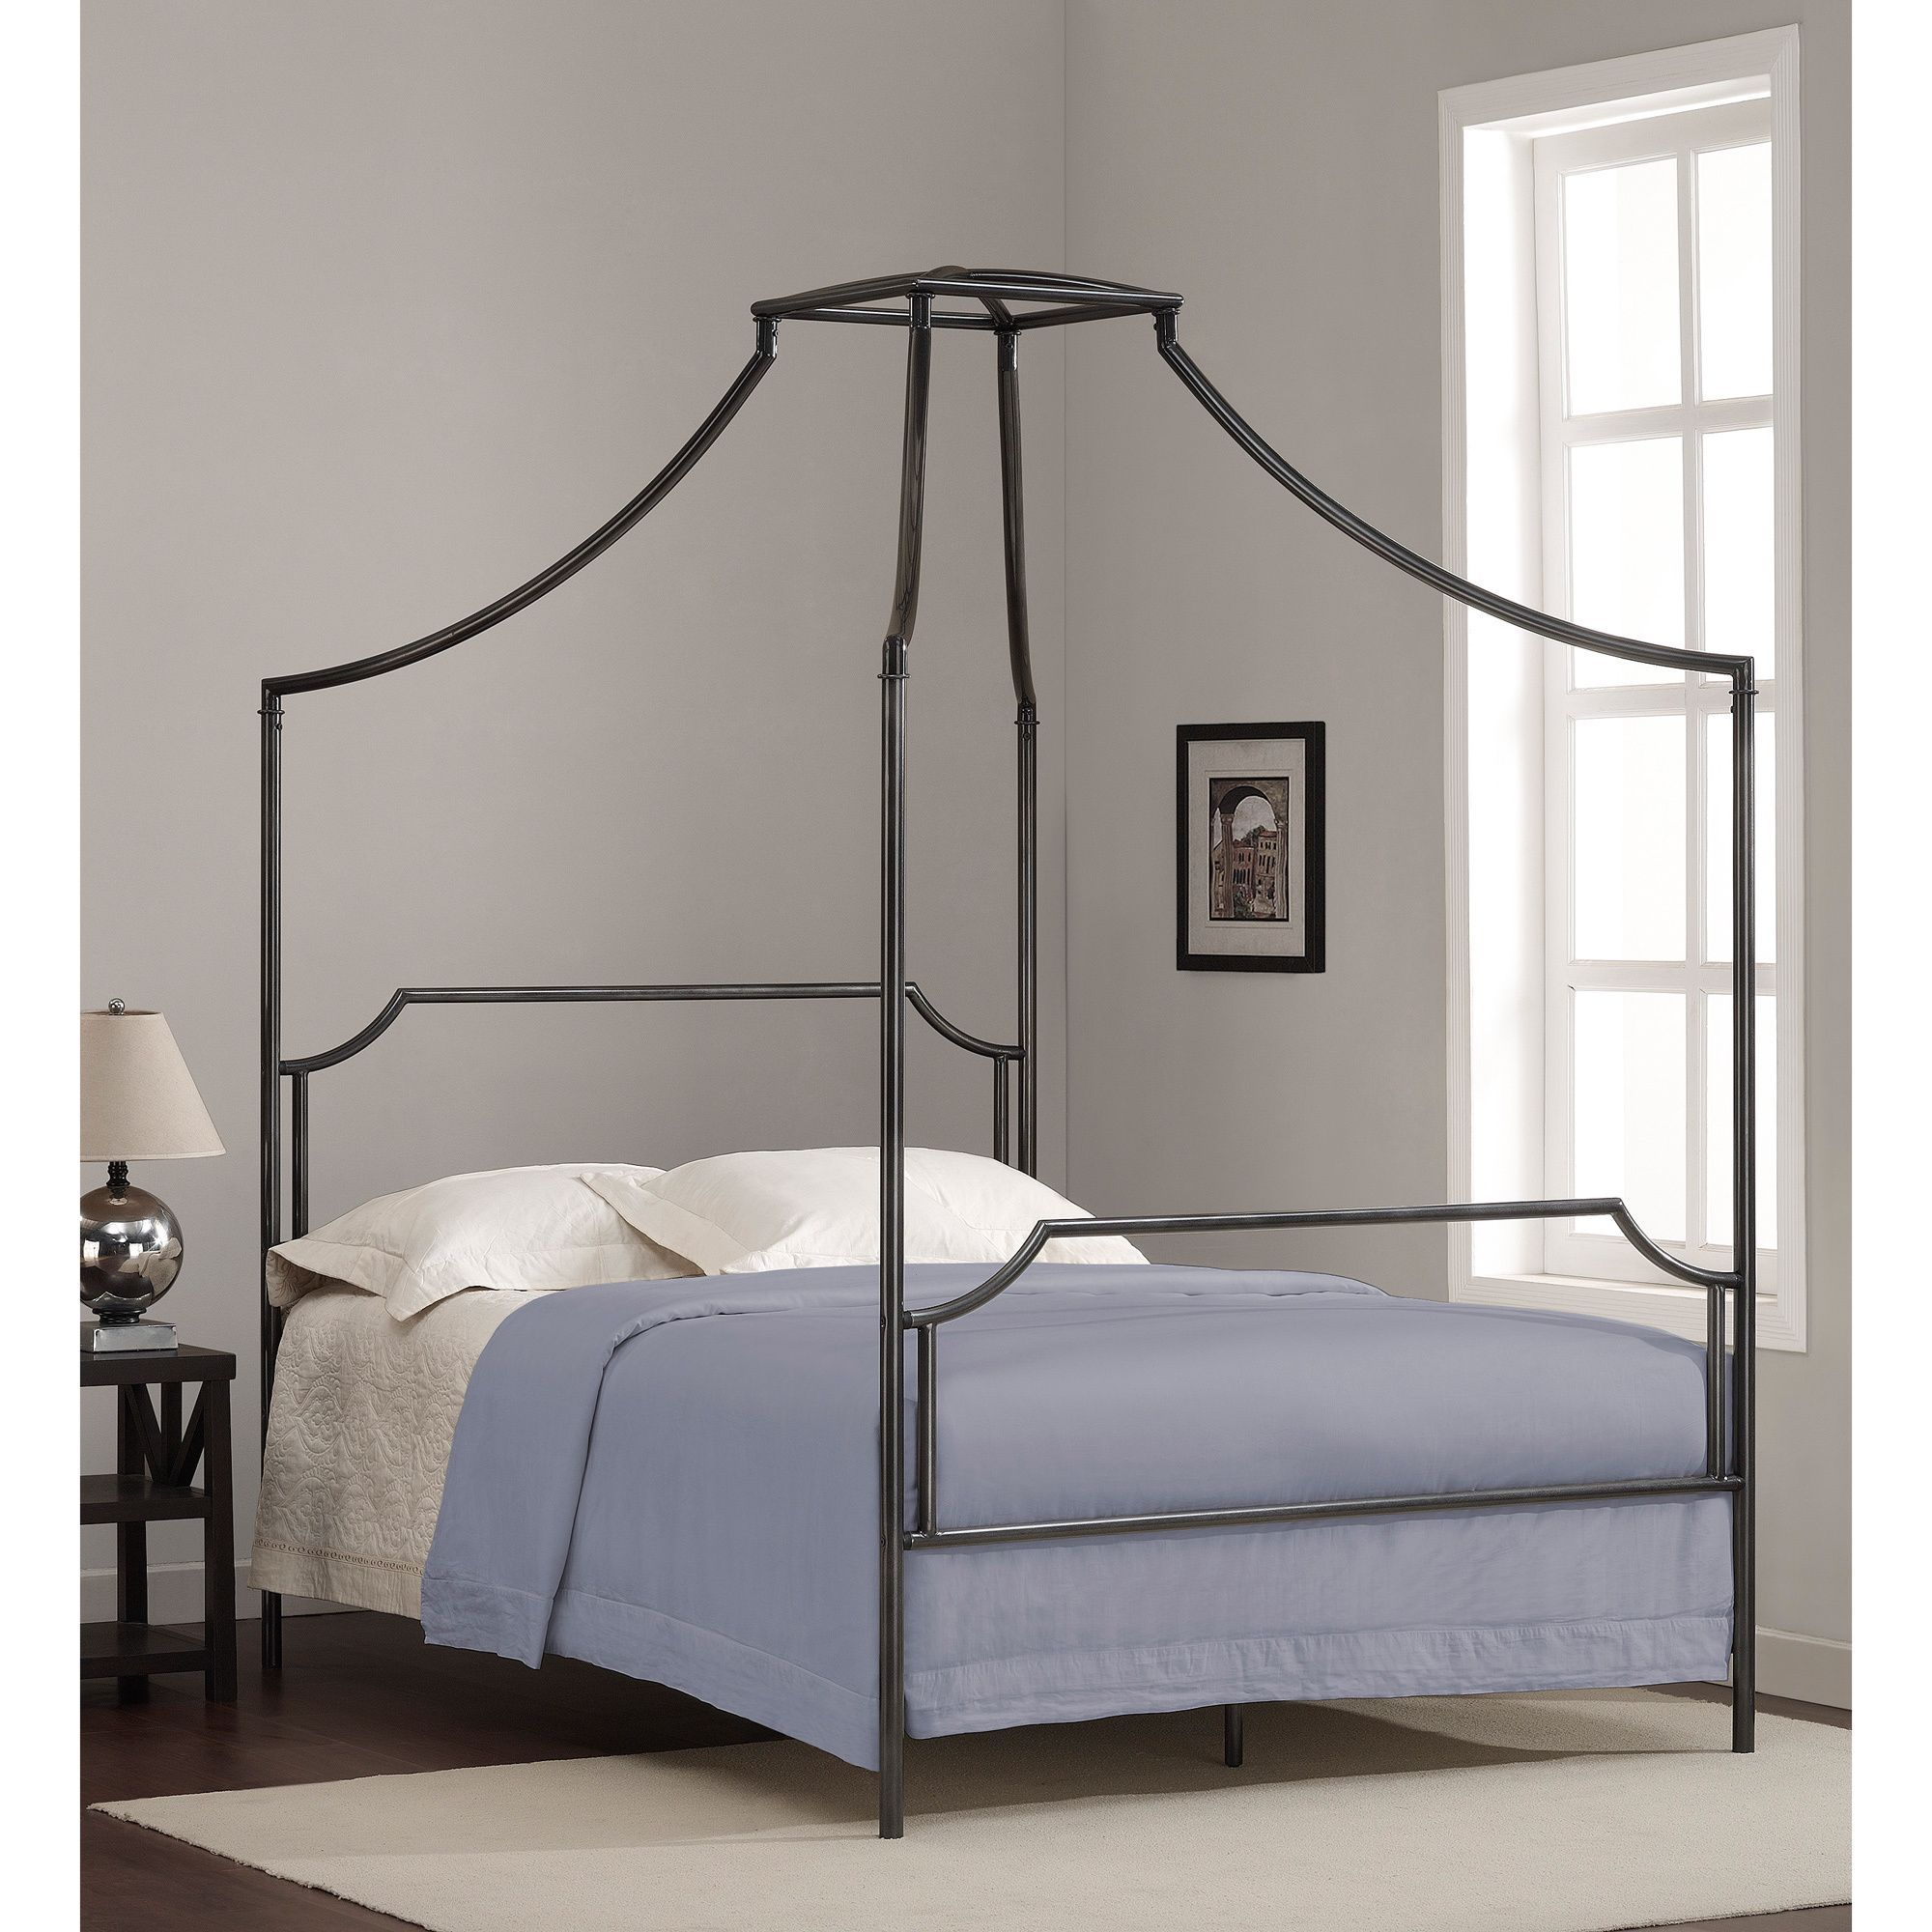 Bailey charcoal full size canopy bed frame by i love Beautiful canopy beds